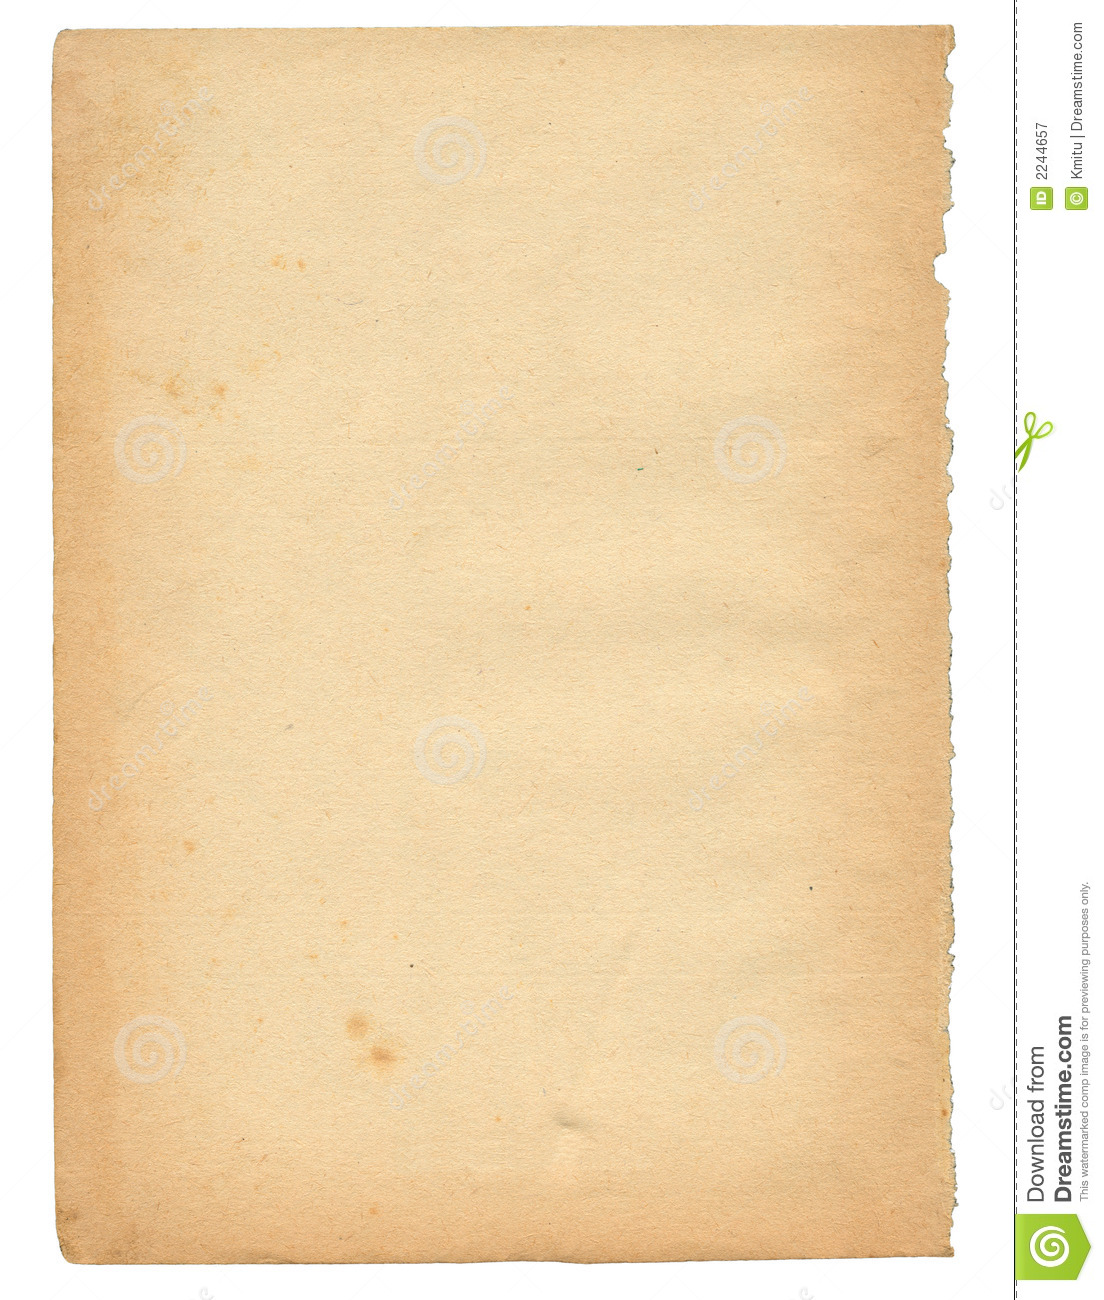 Page: Over 50 Years Old Paper Page Stock Image